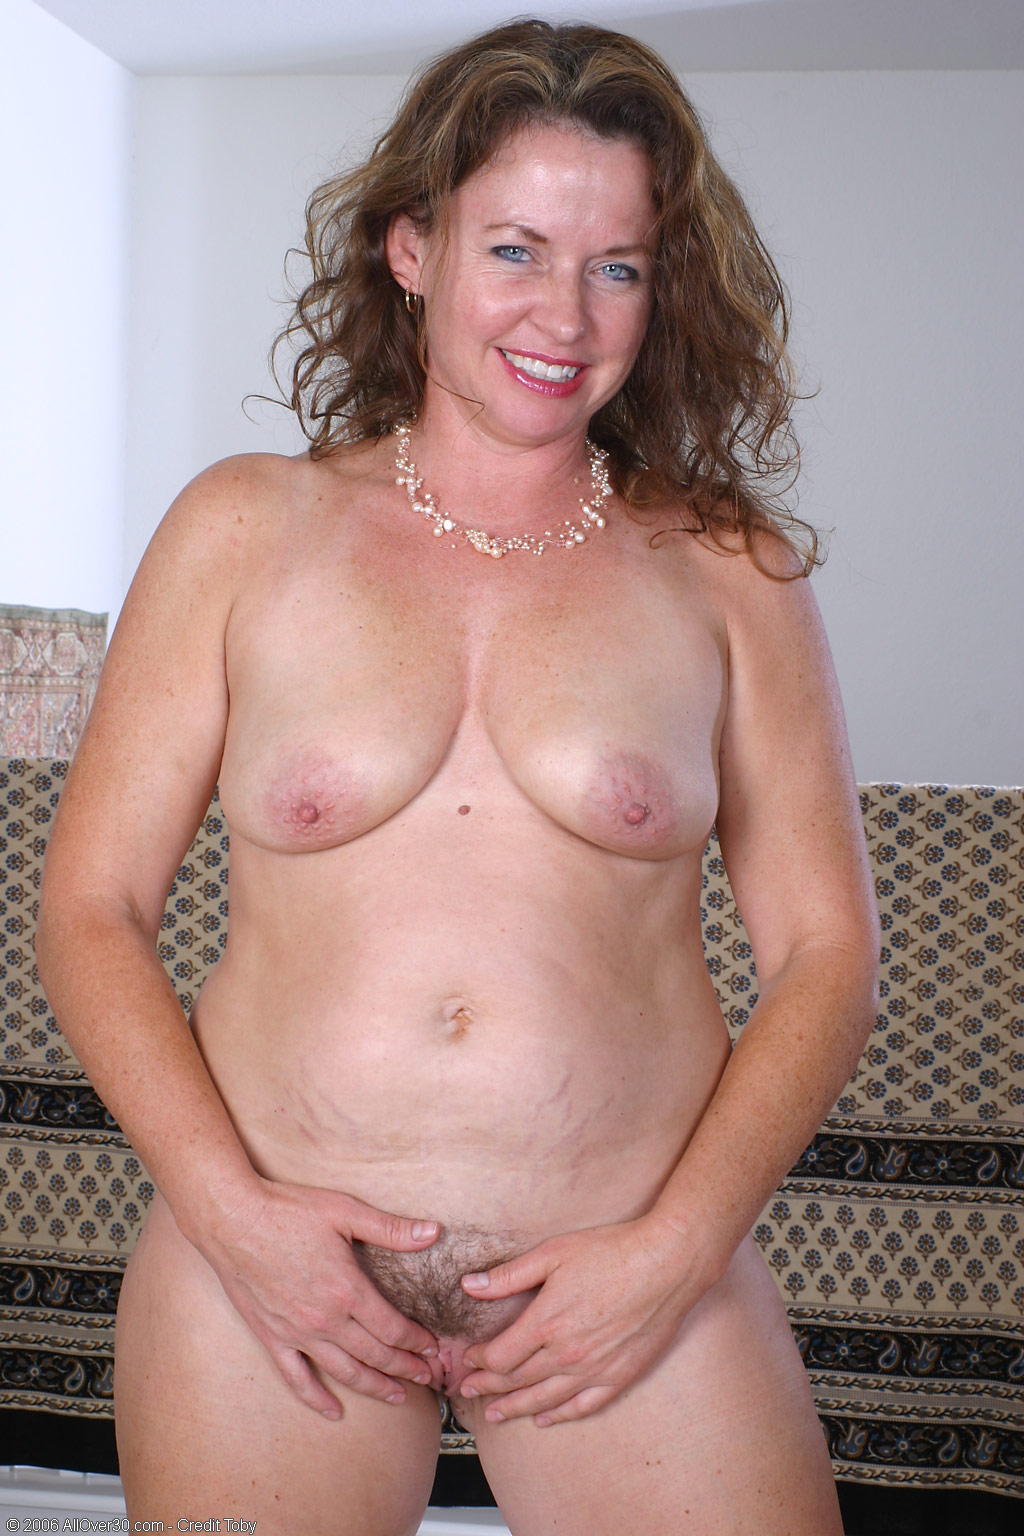 Allover30Freecom - Featuring Sally - High Quality Mature And Milf Pictures And Movies-3373